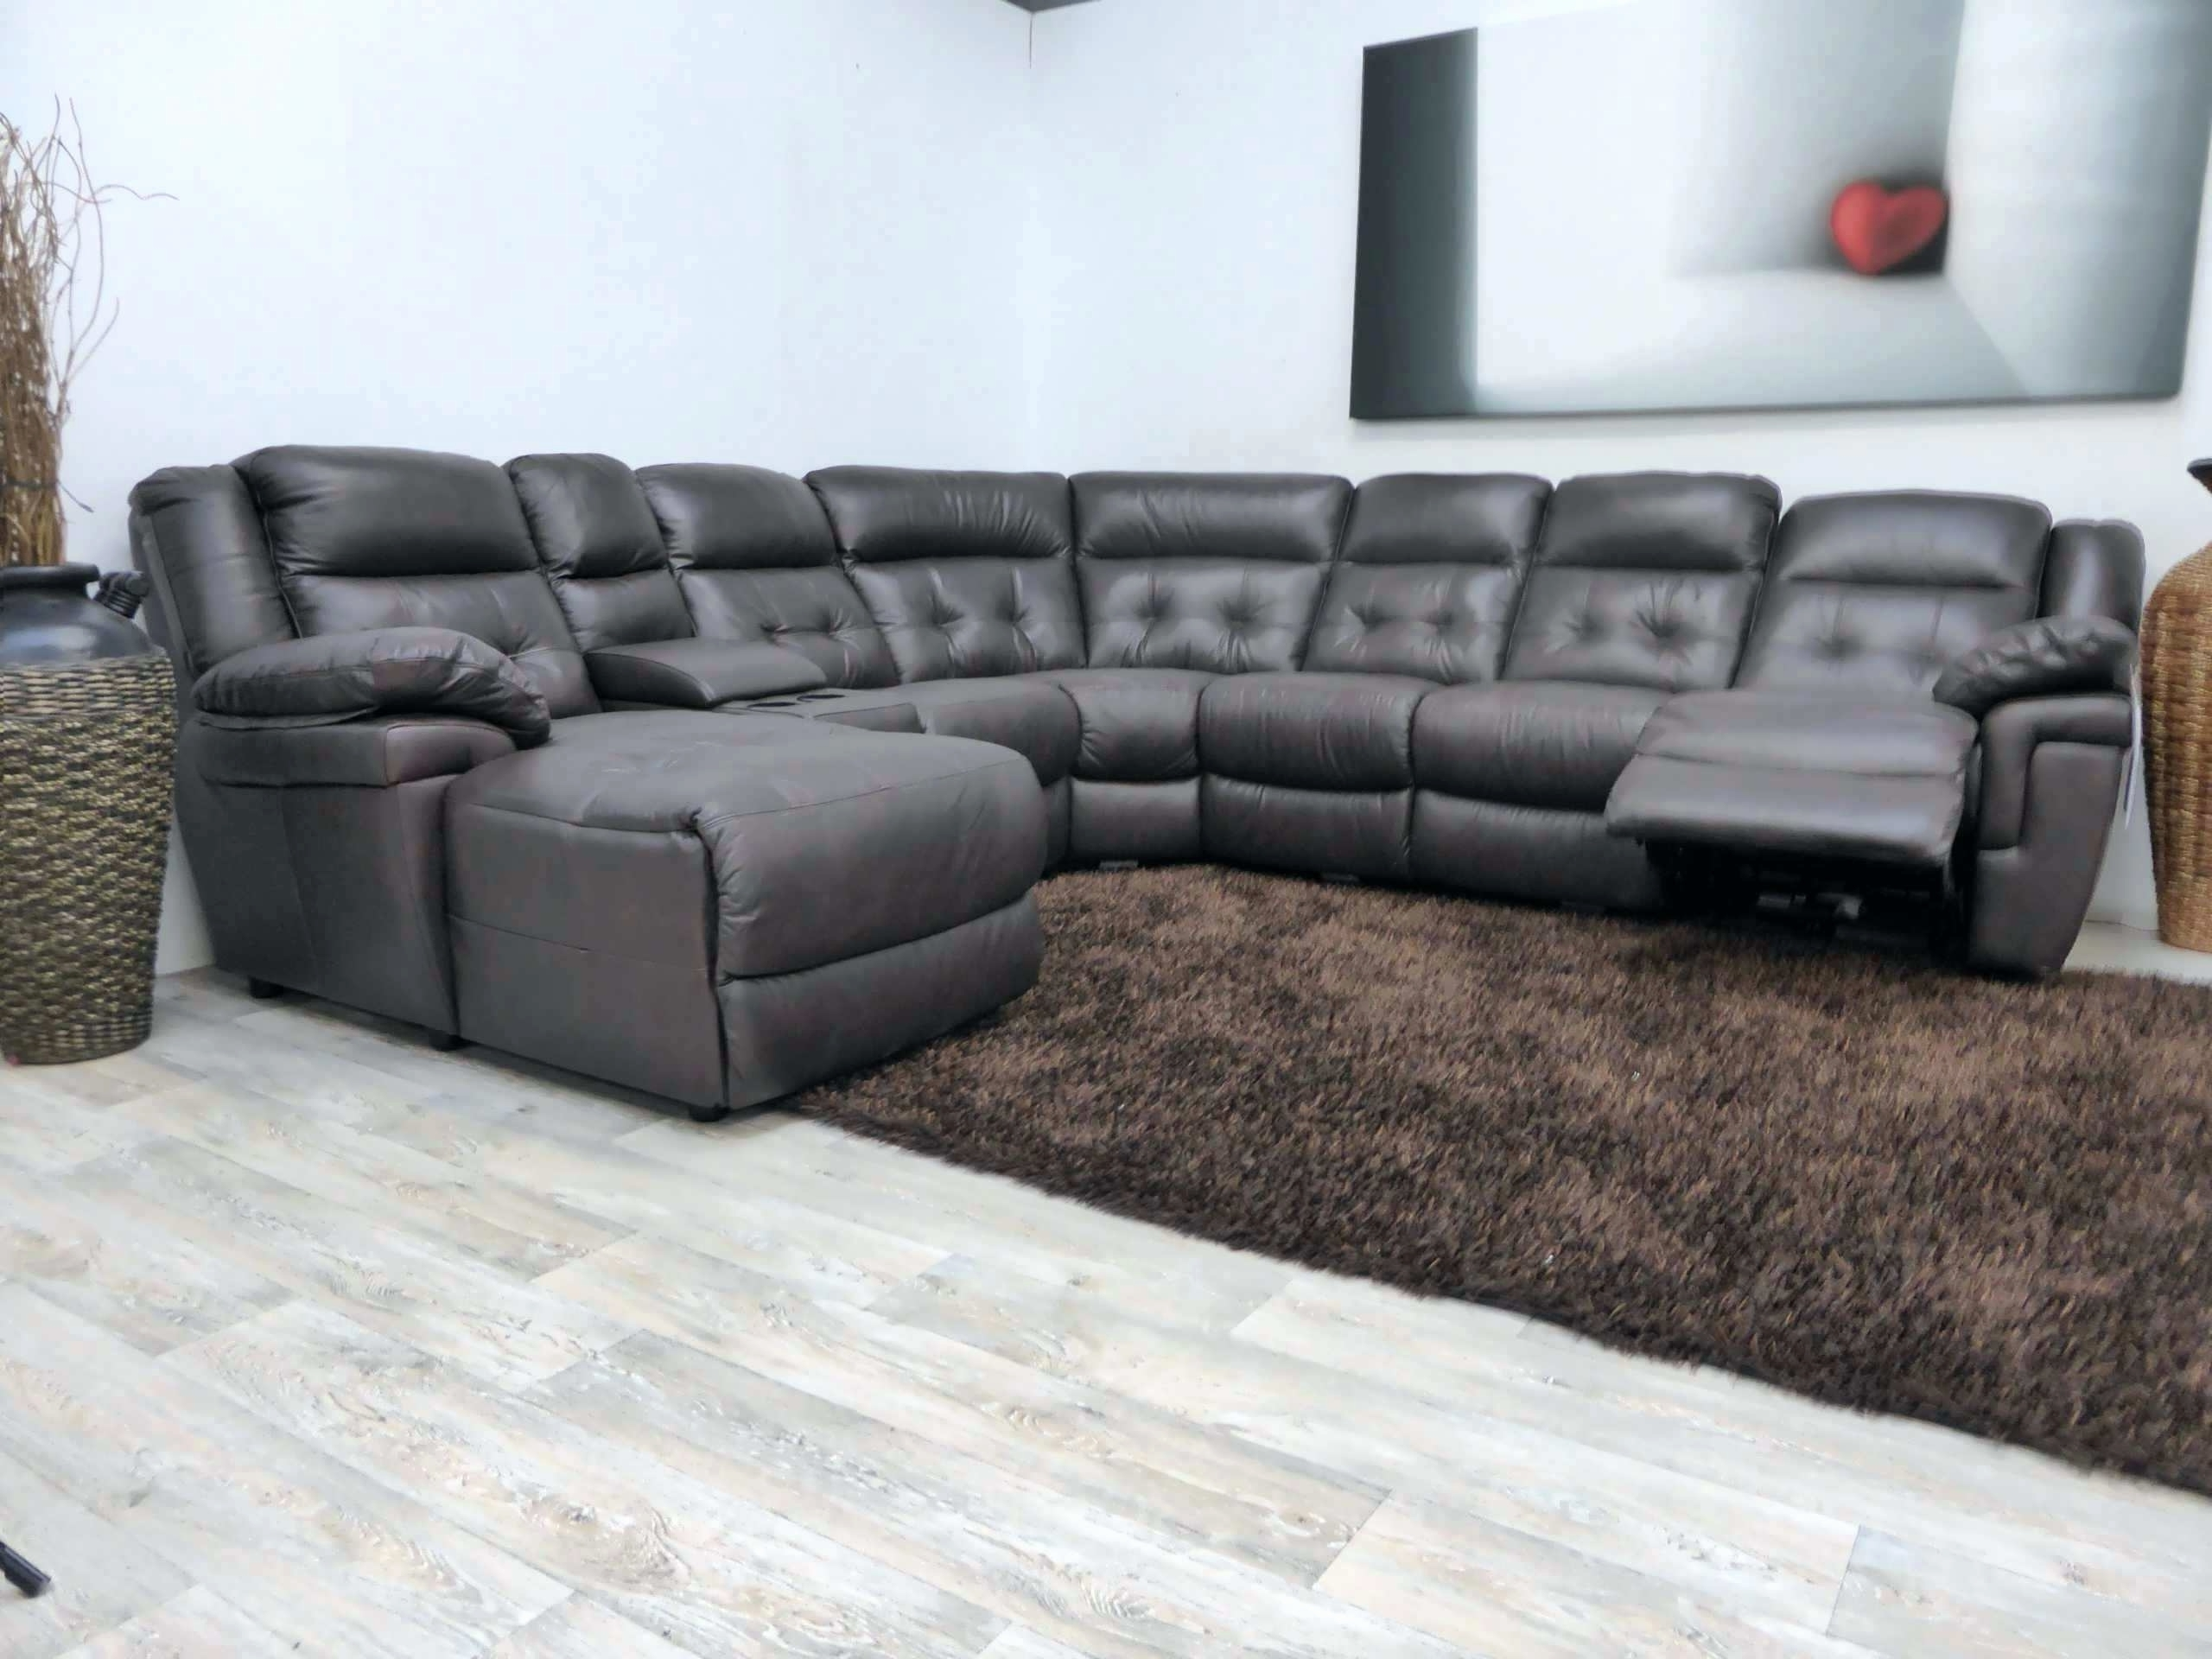 Small Chaise Sofas Intended For Famous Unique Apartment Size Leather Sectional Sofa With Chaise  (View 8 of 15)